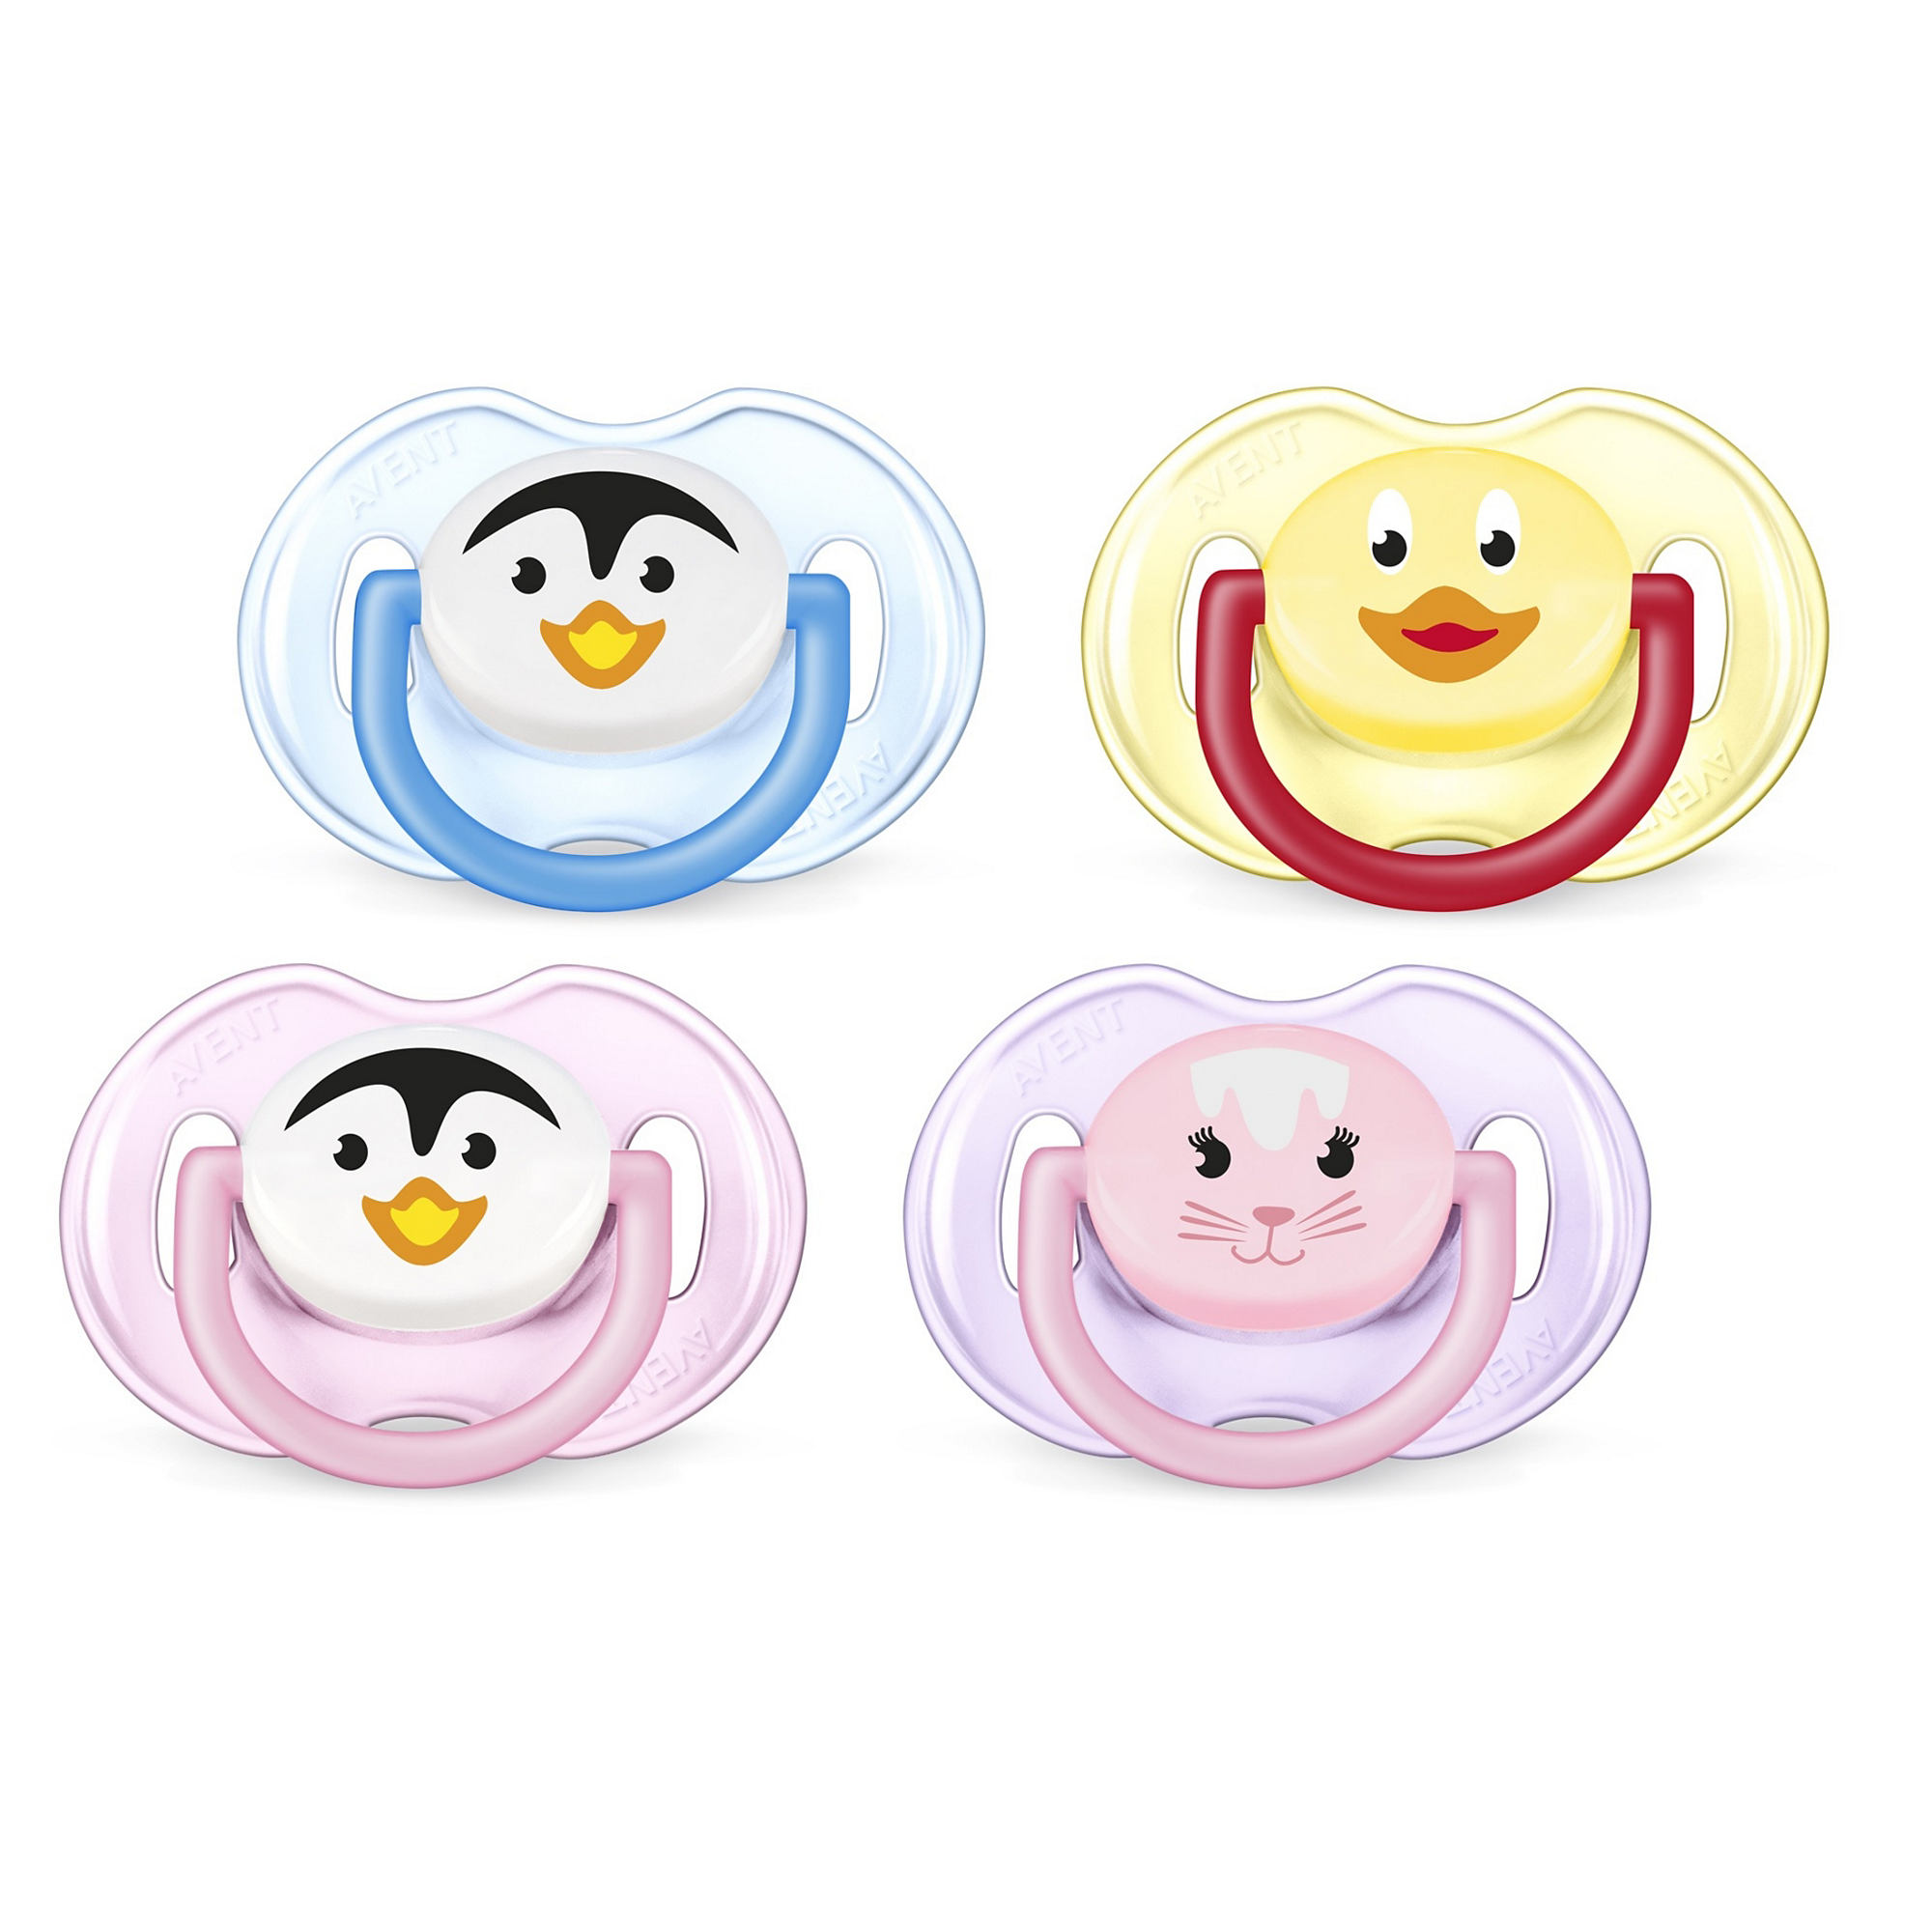 Philips Avent Orthodontic Pacifier, 0-6 months, Various Animal Designs, 2 pack, SCF182/23 (Design may vary)